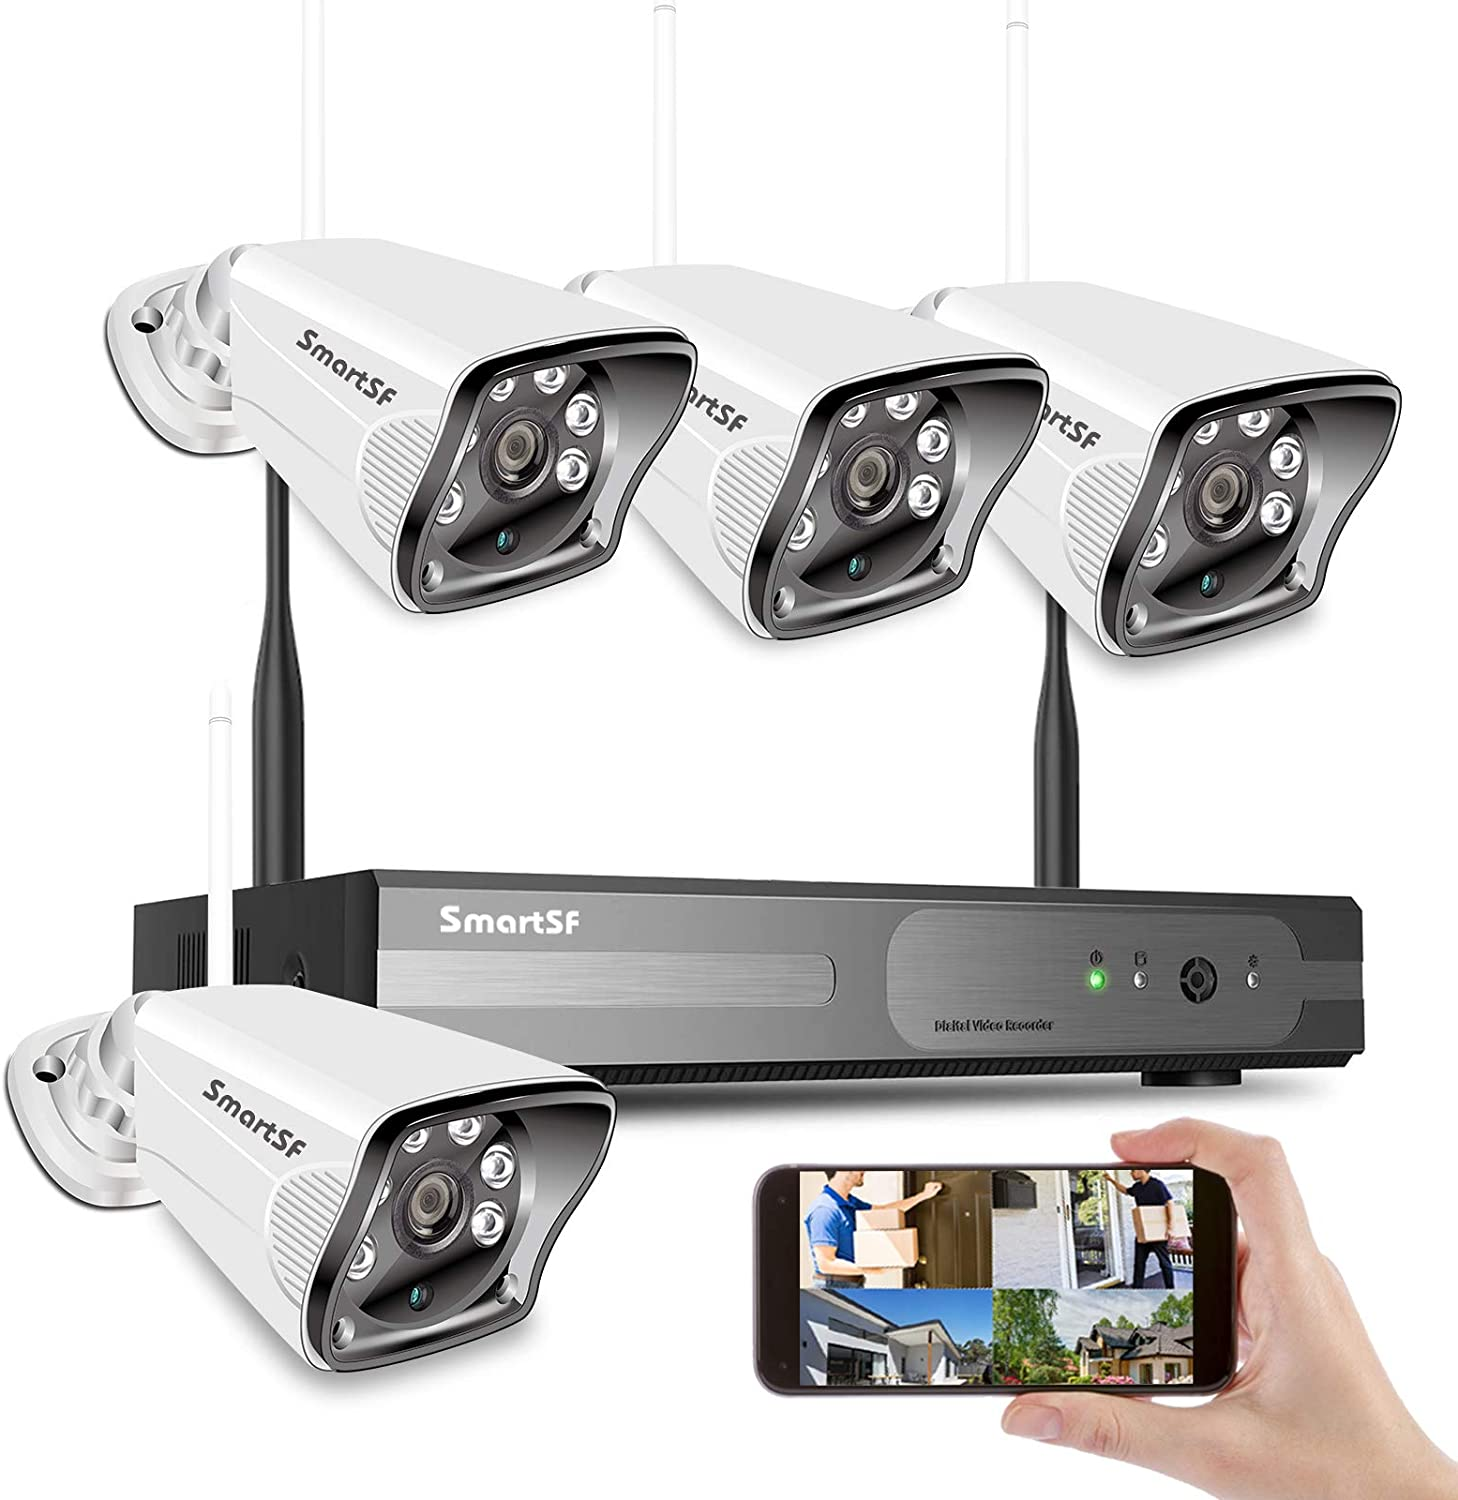 SmartSF 8CH 720P Wireless Security Cameras System,H.265 1080P NVR 4Pcs WiFi IP Security Surveillance Cameras Home Outdoor with Night Vision,Waterproof,Motion Alert,Remote Access,No Hard Disk